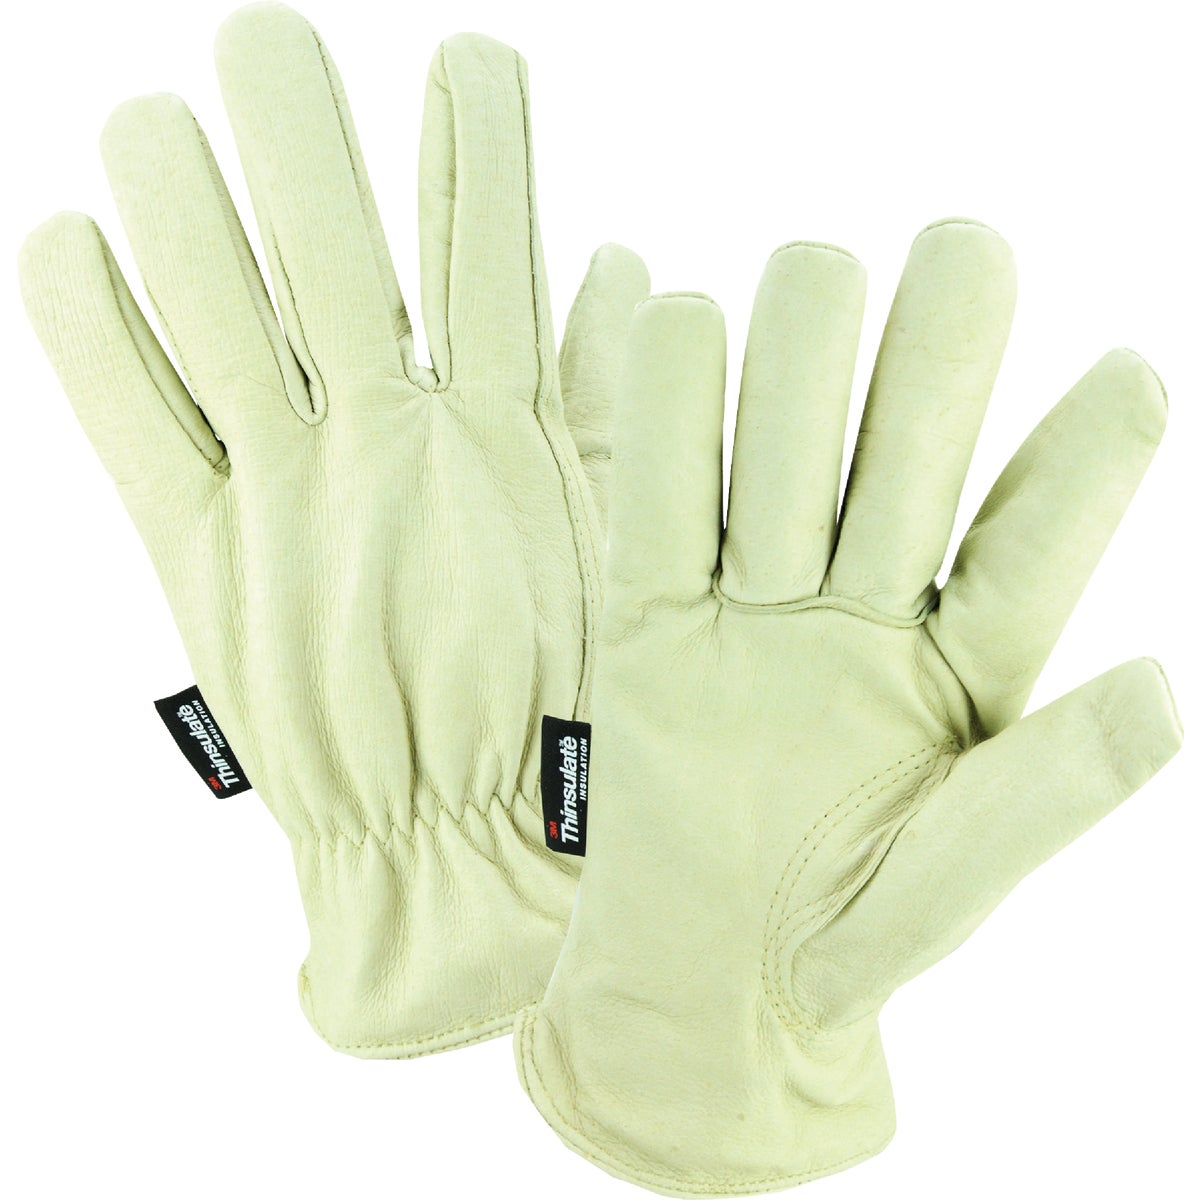 XL LEATHER LINED GLOVE - 1108XL by Wells Lamont